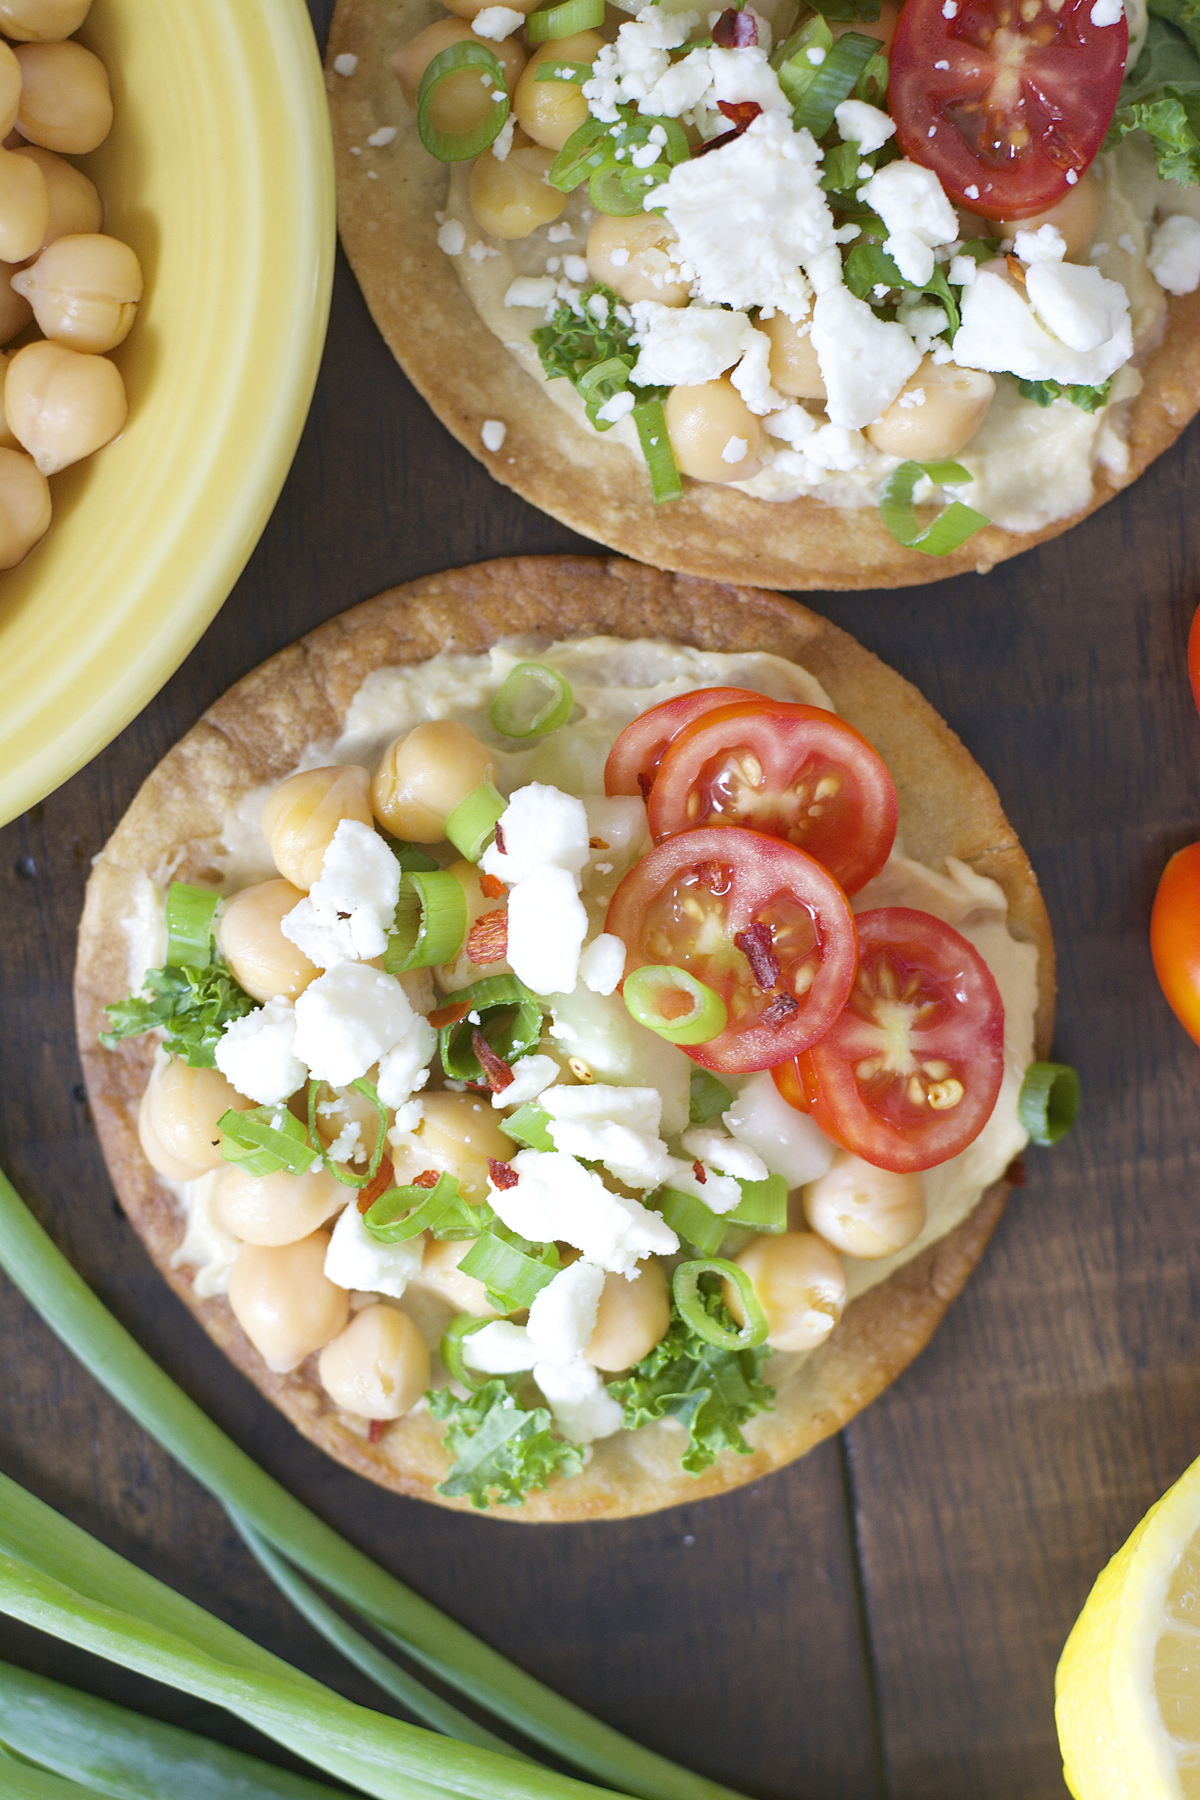 These Mediterranean Hummus Tostadas are an effortless idea for entertaining! Crispy tostadas are topped with creamy hummus, tender chick peas and fresh veggies!